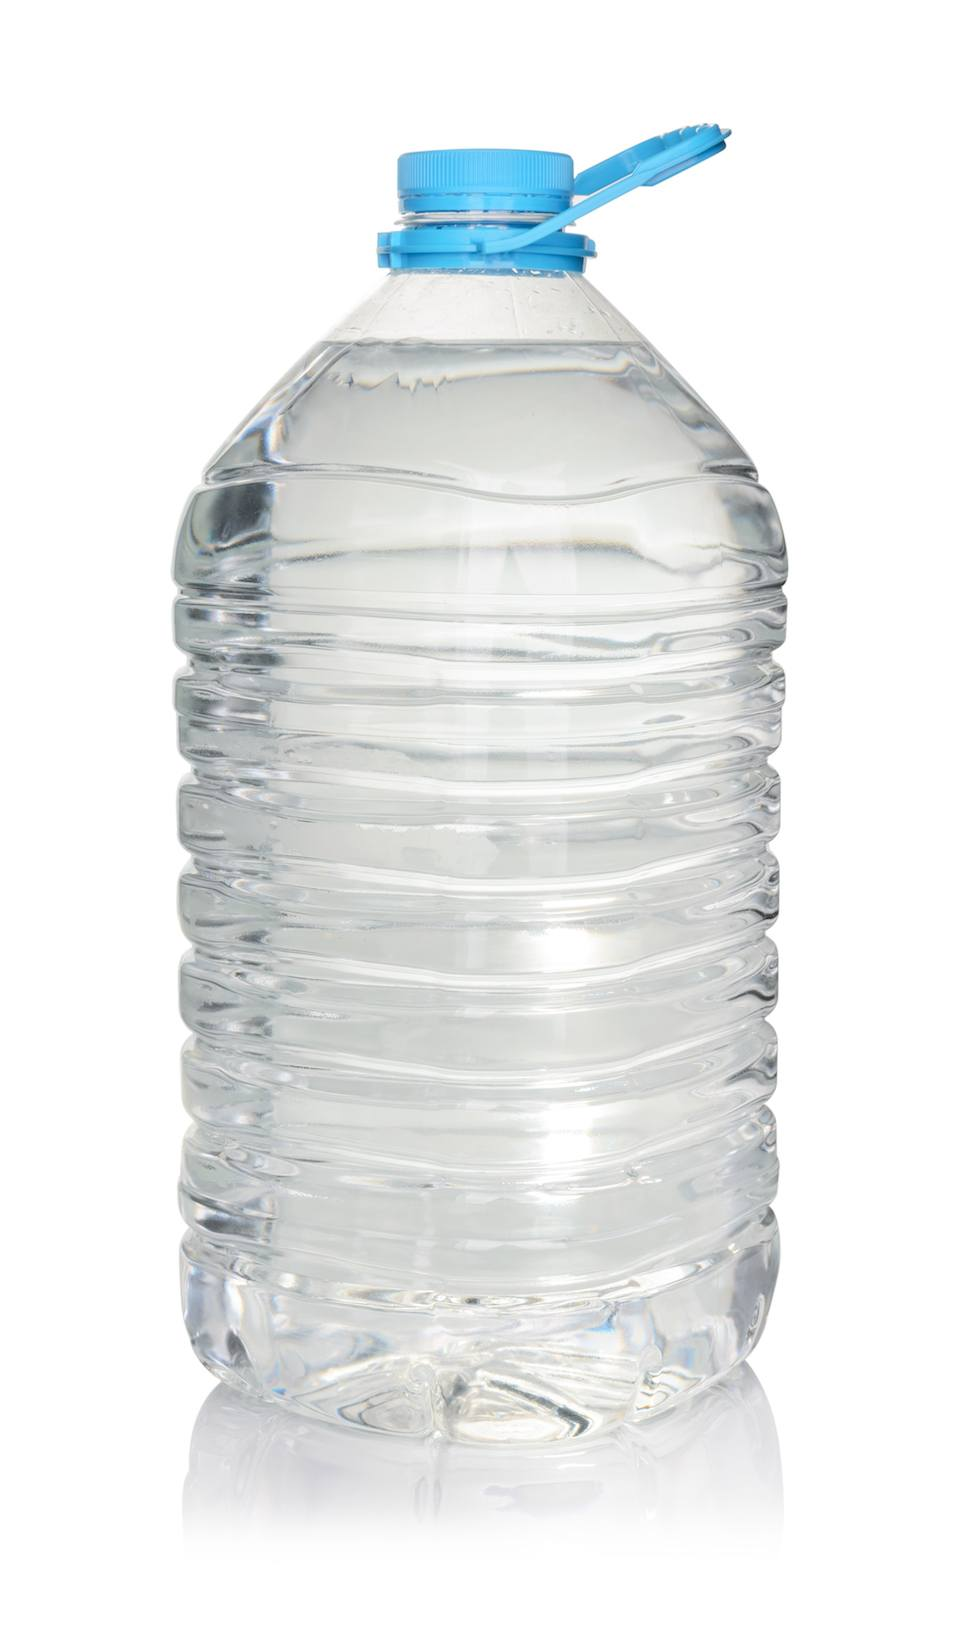 Plastic bottle of drinking water